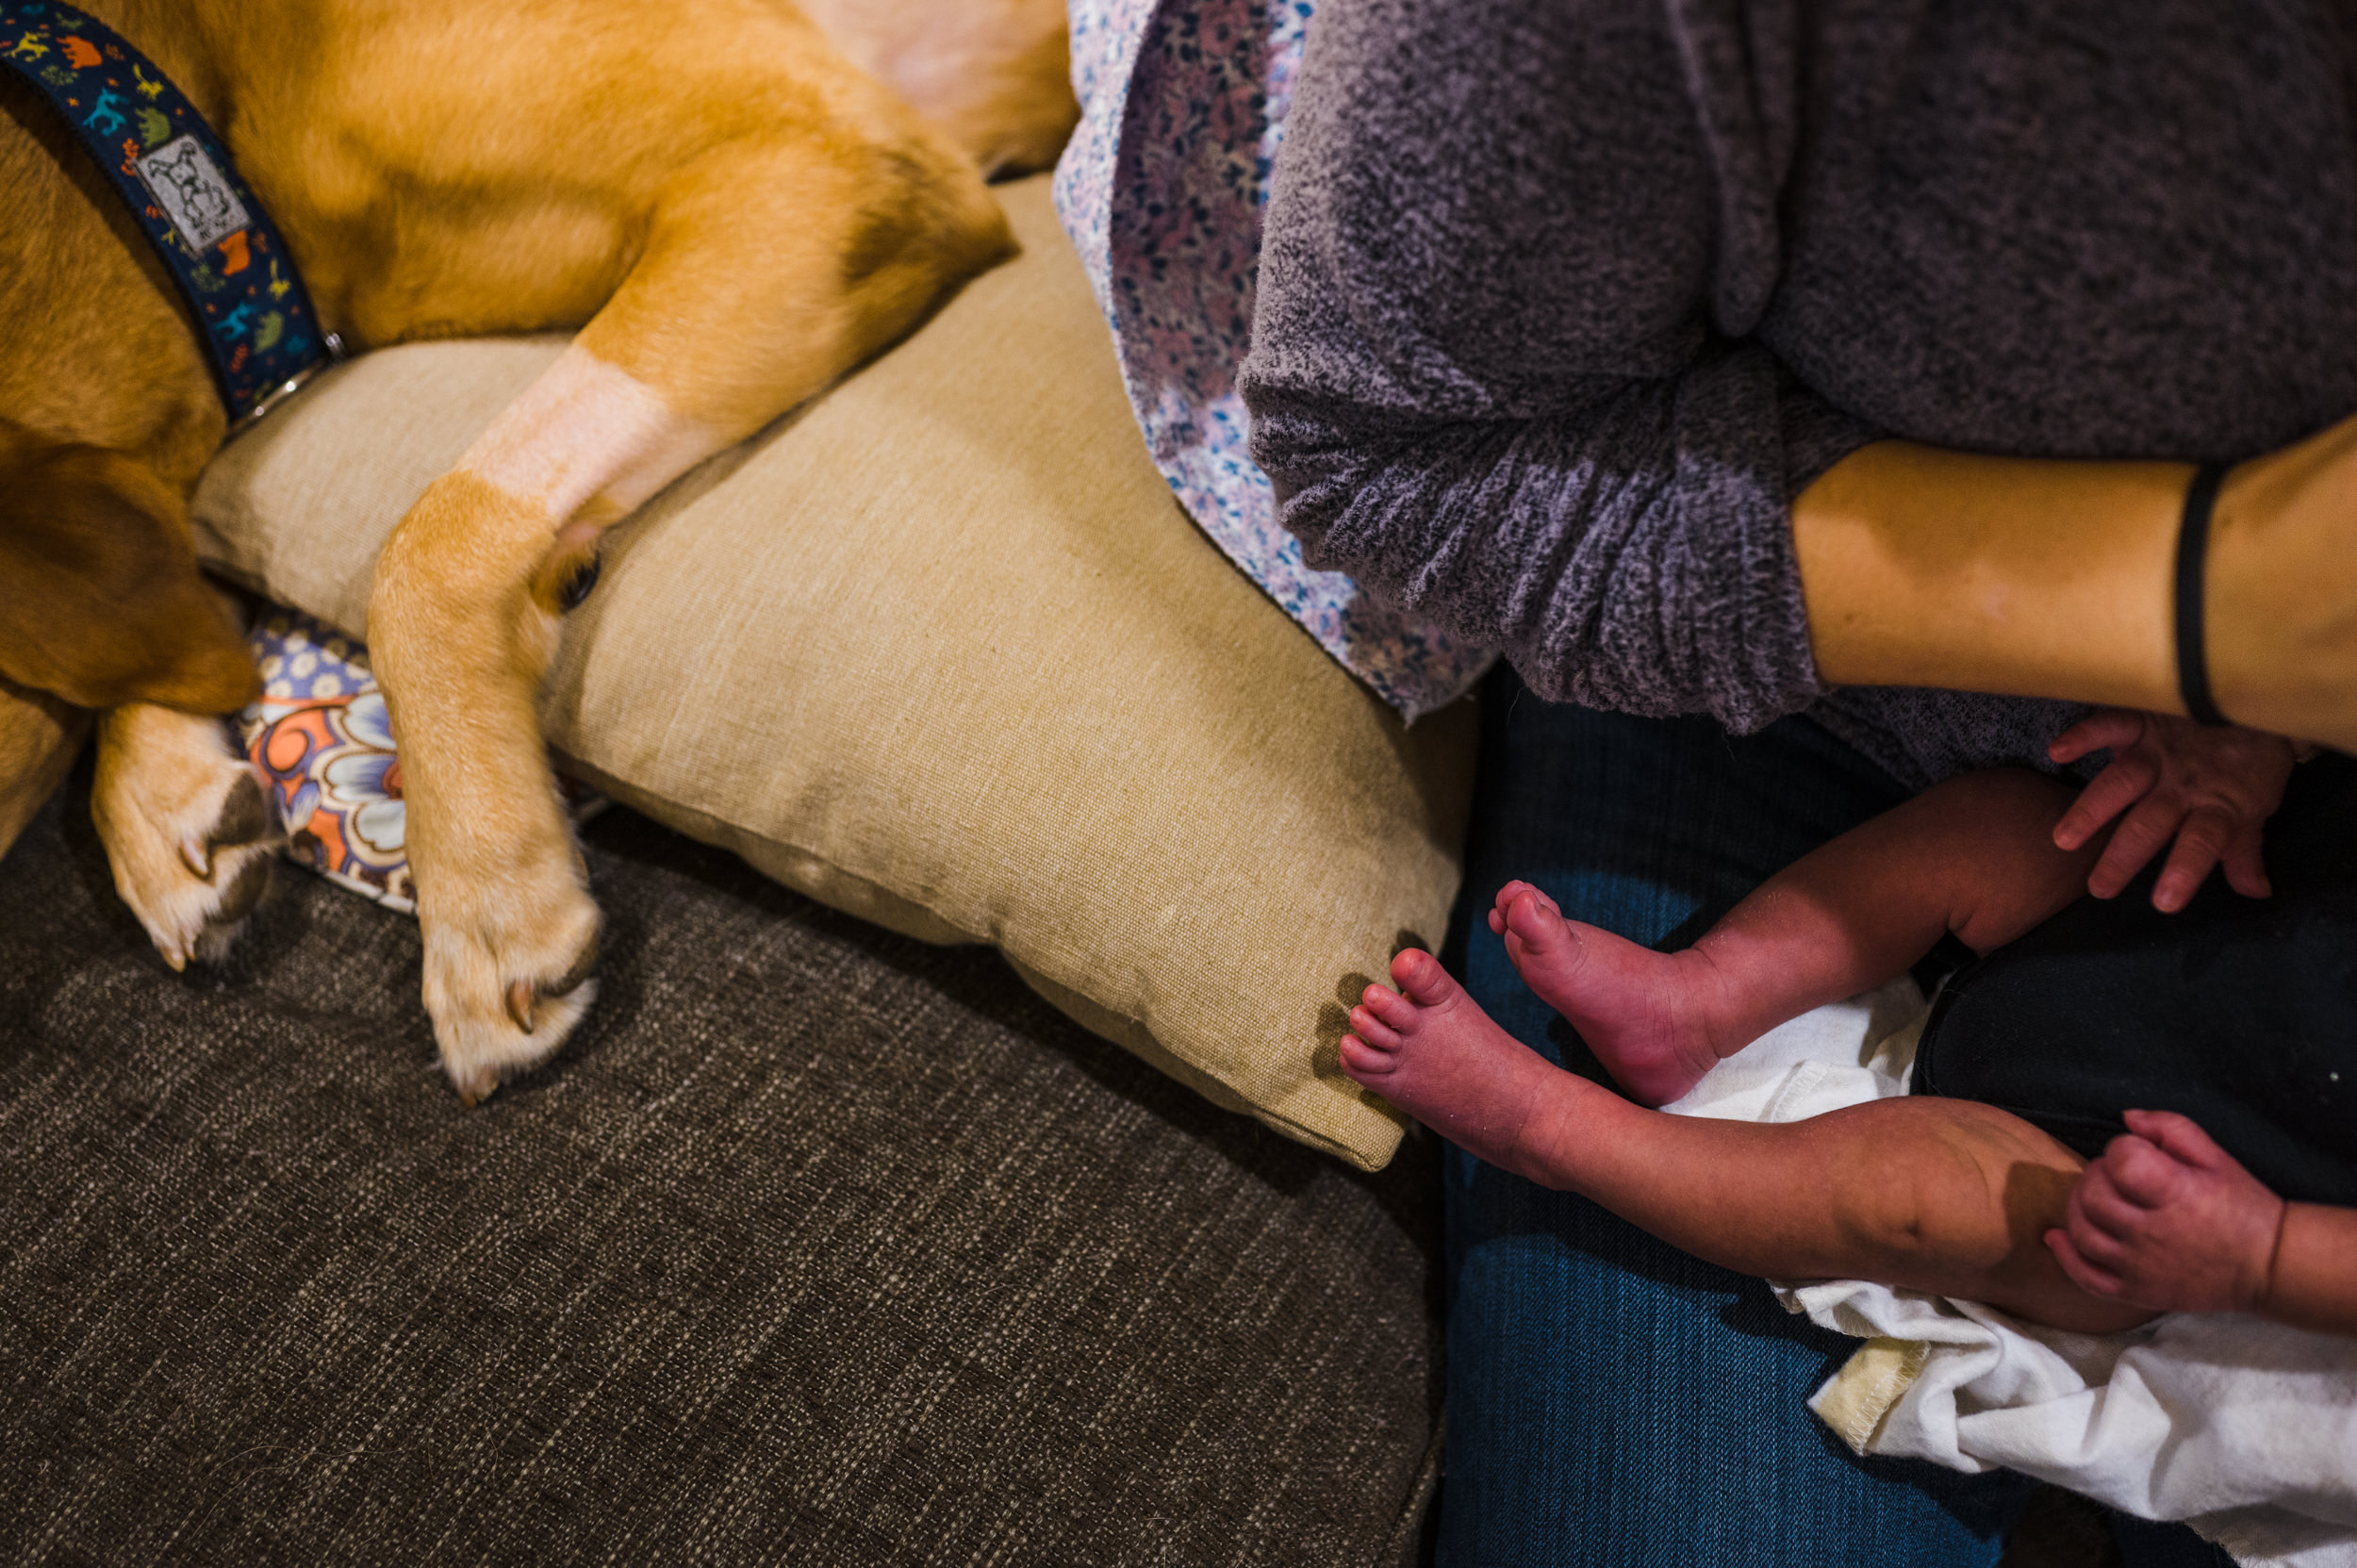 Family dog sleeping beside mom and newborn baby on the couch.